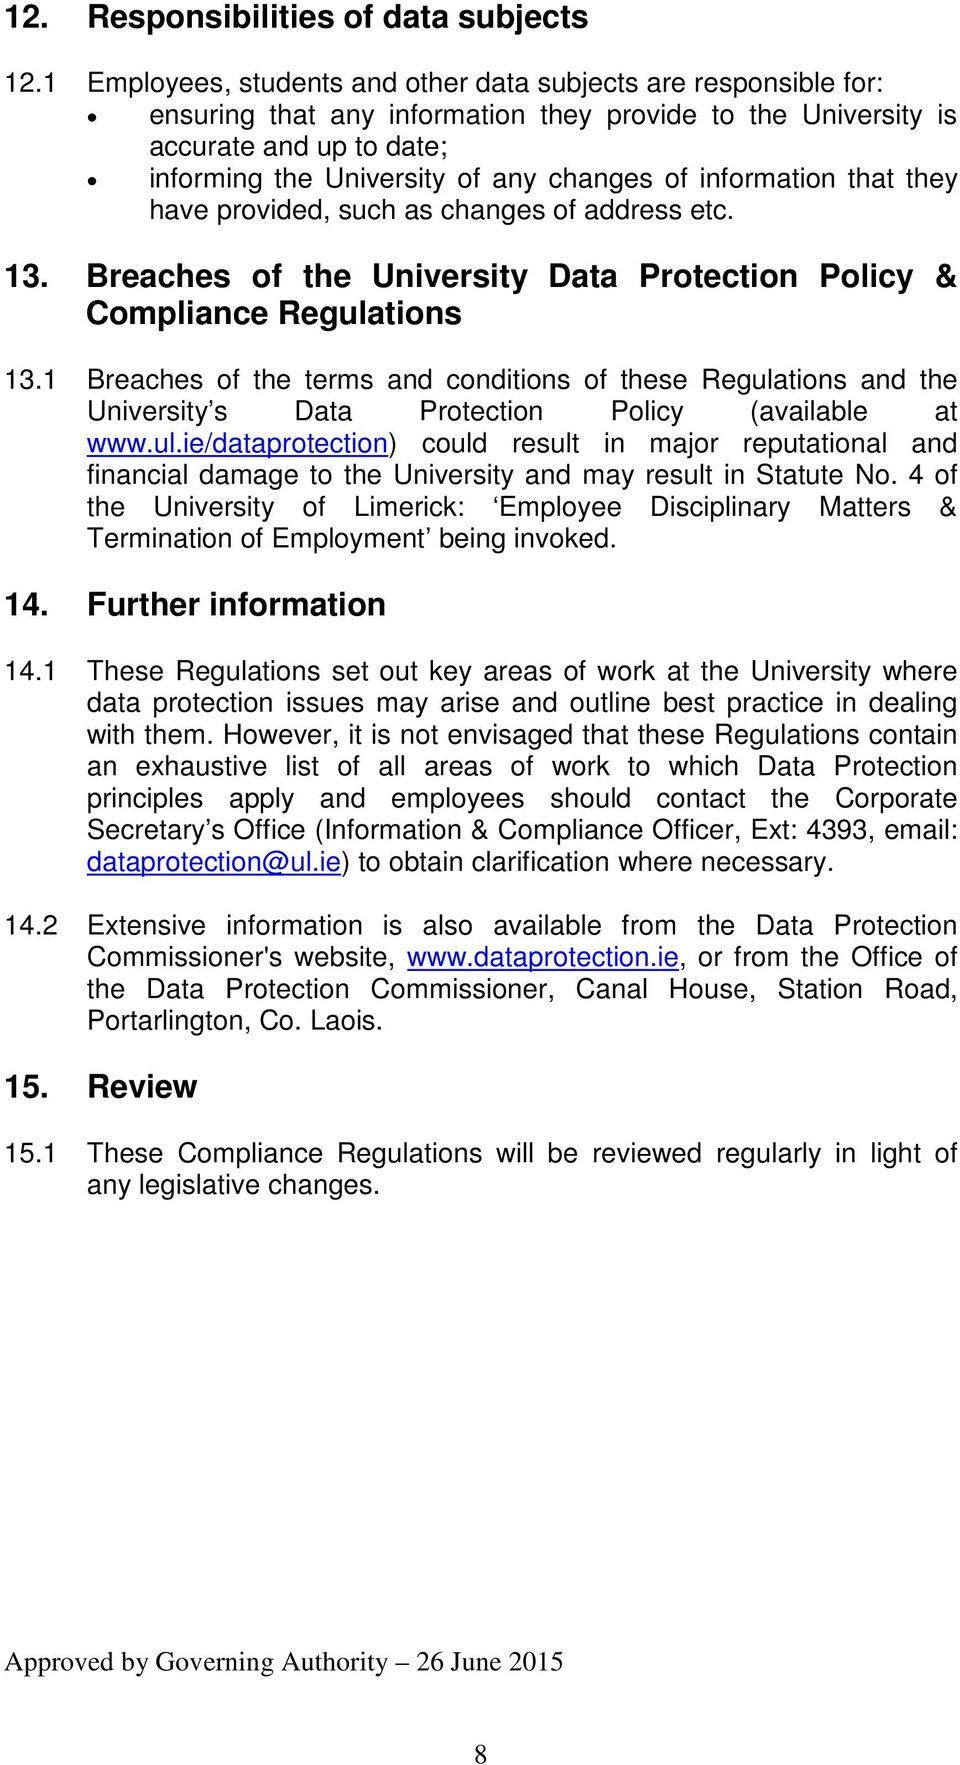 information that they have provided, such as changes of address etc. 13. Breaches of the University Data Protection Policy & Compliance Regulations 13.